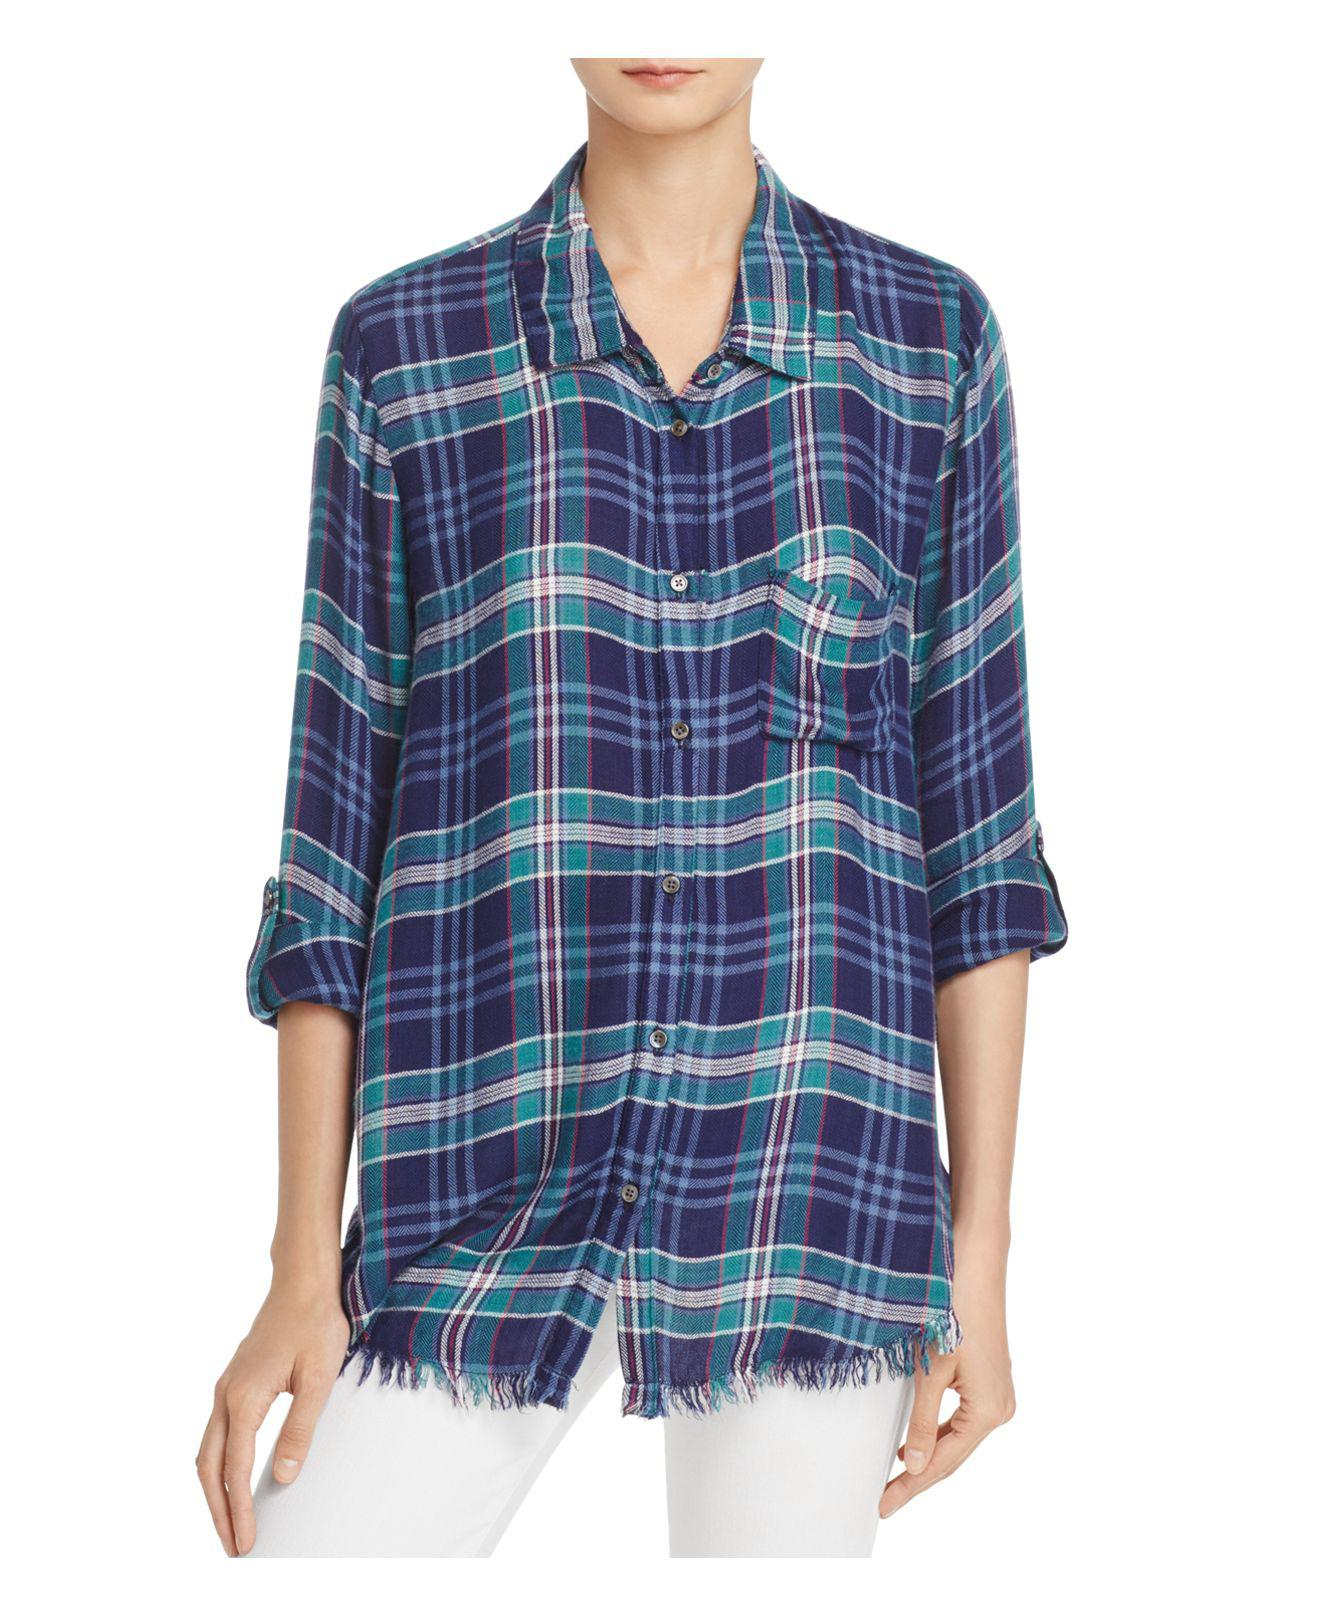 Lyst soft joie anabella e frayed plaid shirt in blue for Soft joie plaid shirt